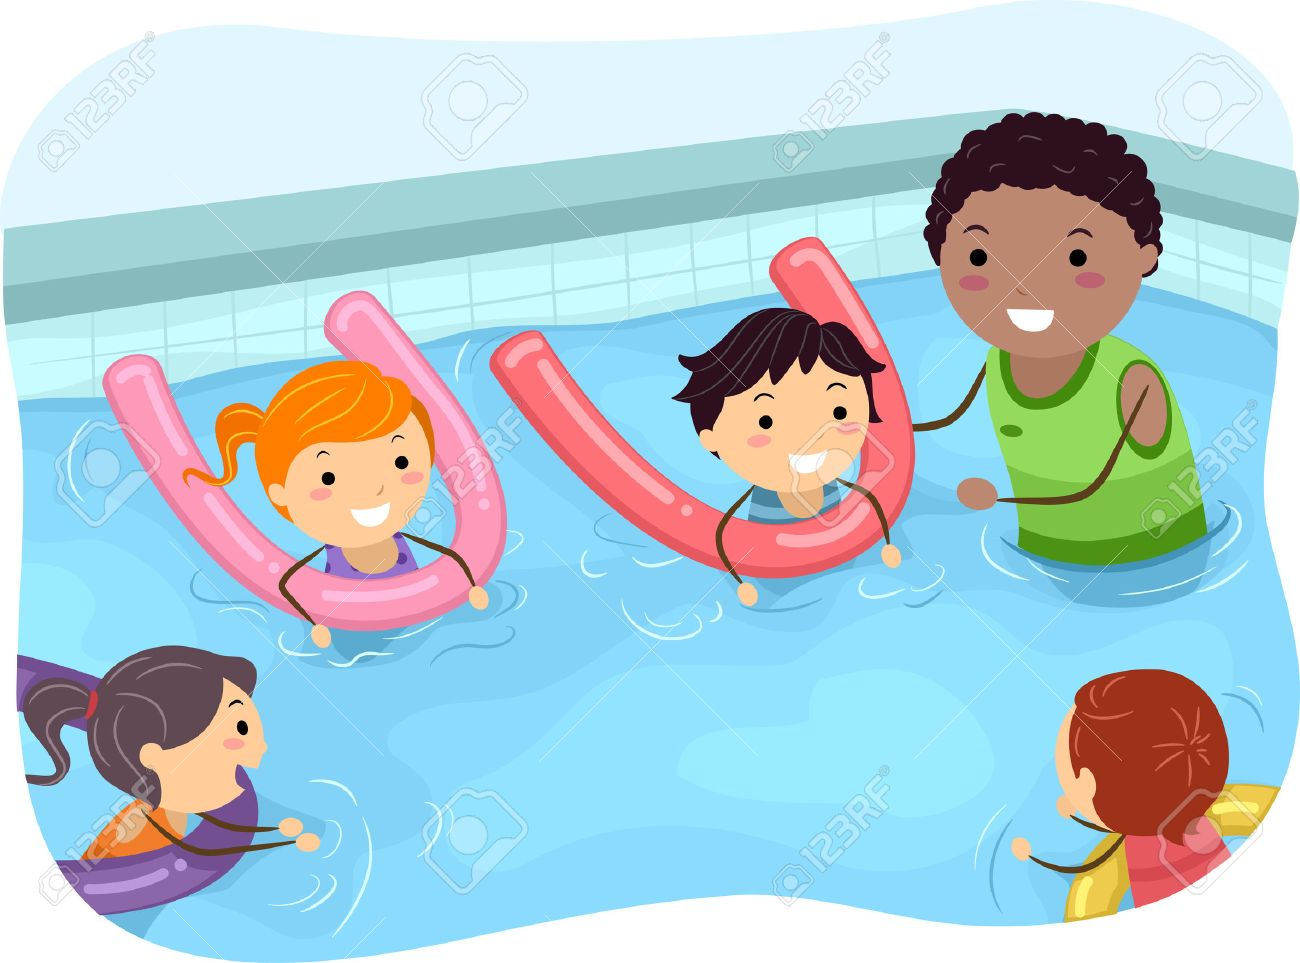 Illustration of Kids Being Taught How to Swim by a Swimming Coach - 35168865